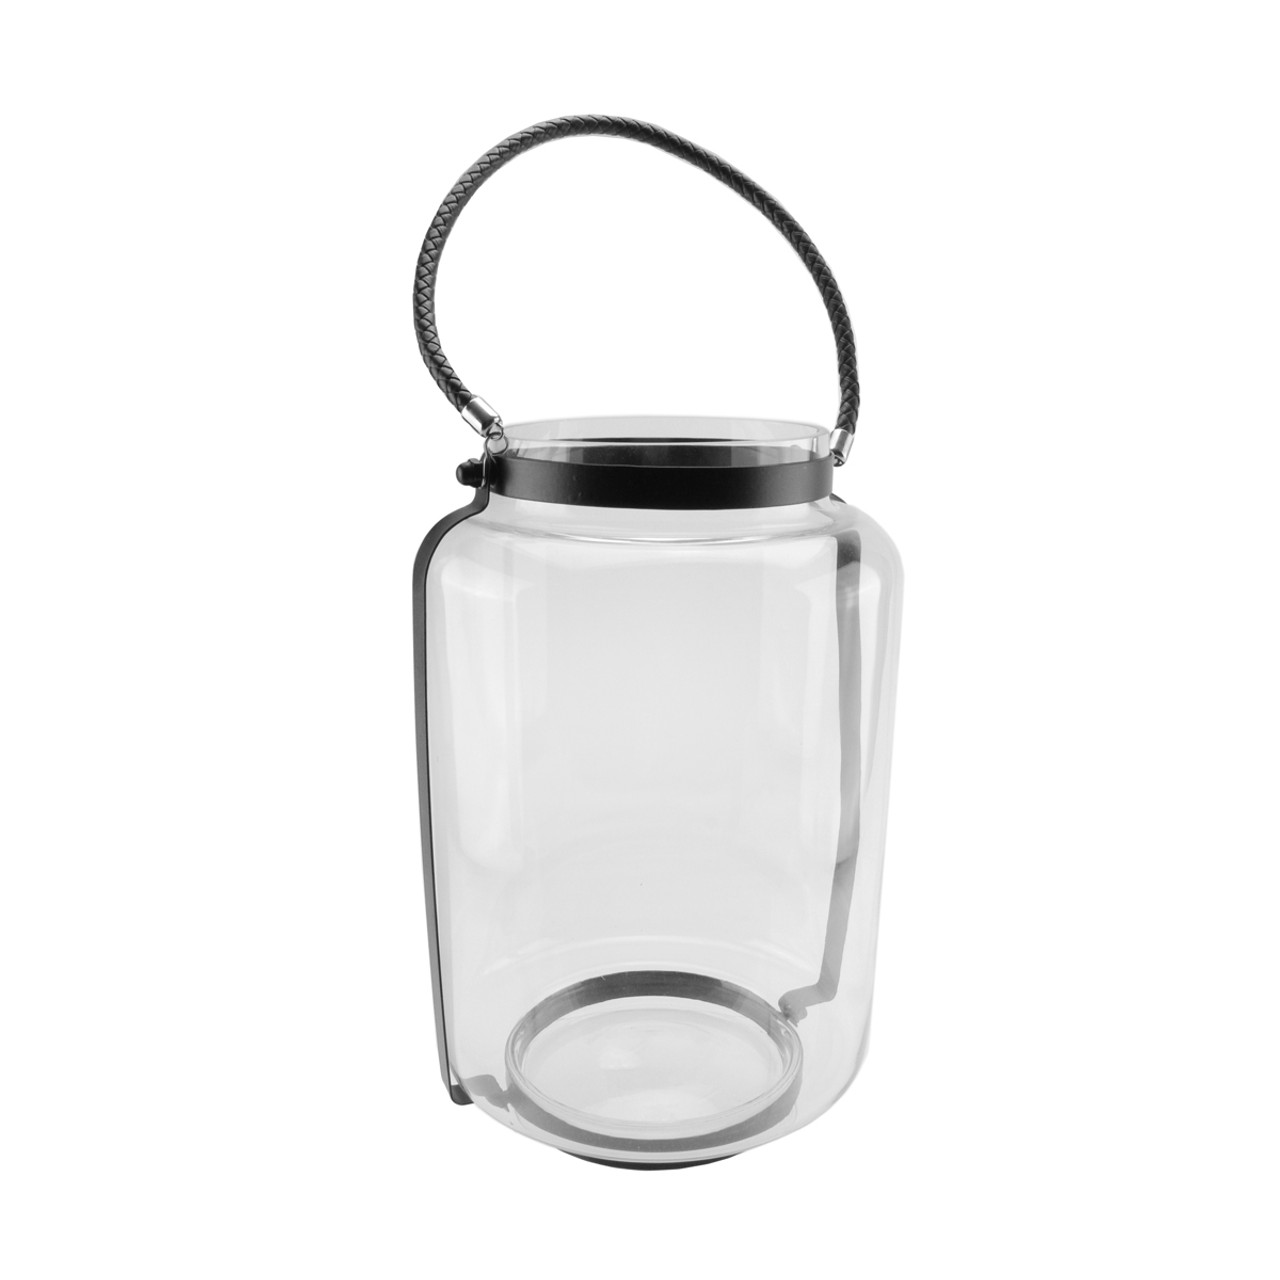 18 Clear Glass Hurricane Candle Holder Lantern With Jet Black Metal Frame Christmas Central